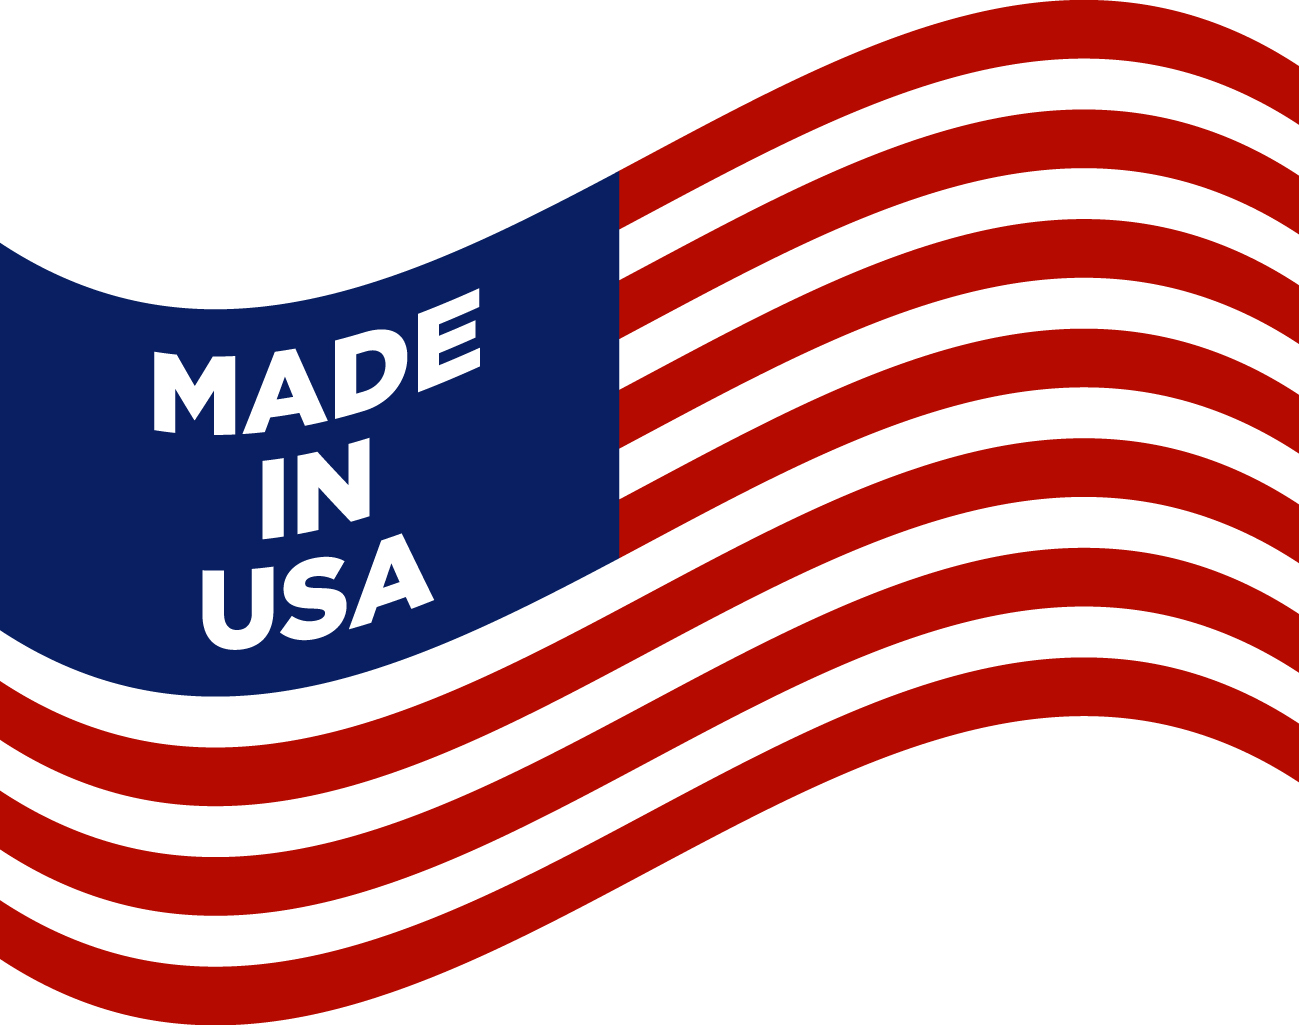 usa flag clipart at getdrawings com free for personal use usa flag rh getdrawings com  waving american flag clip art animated